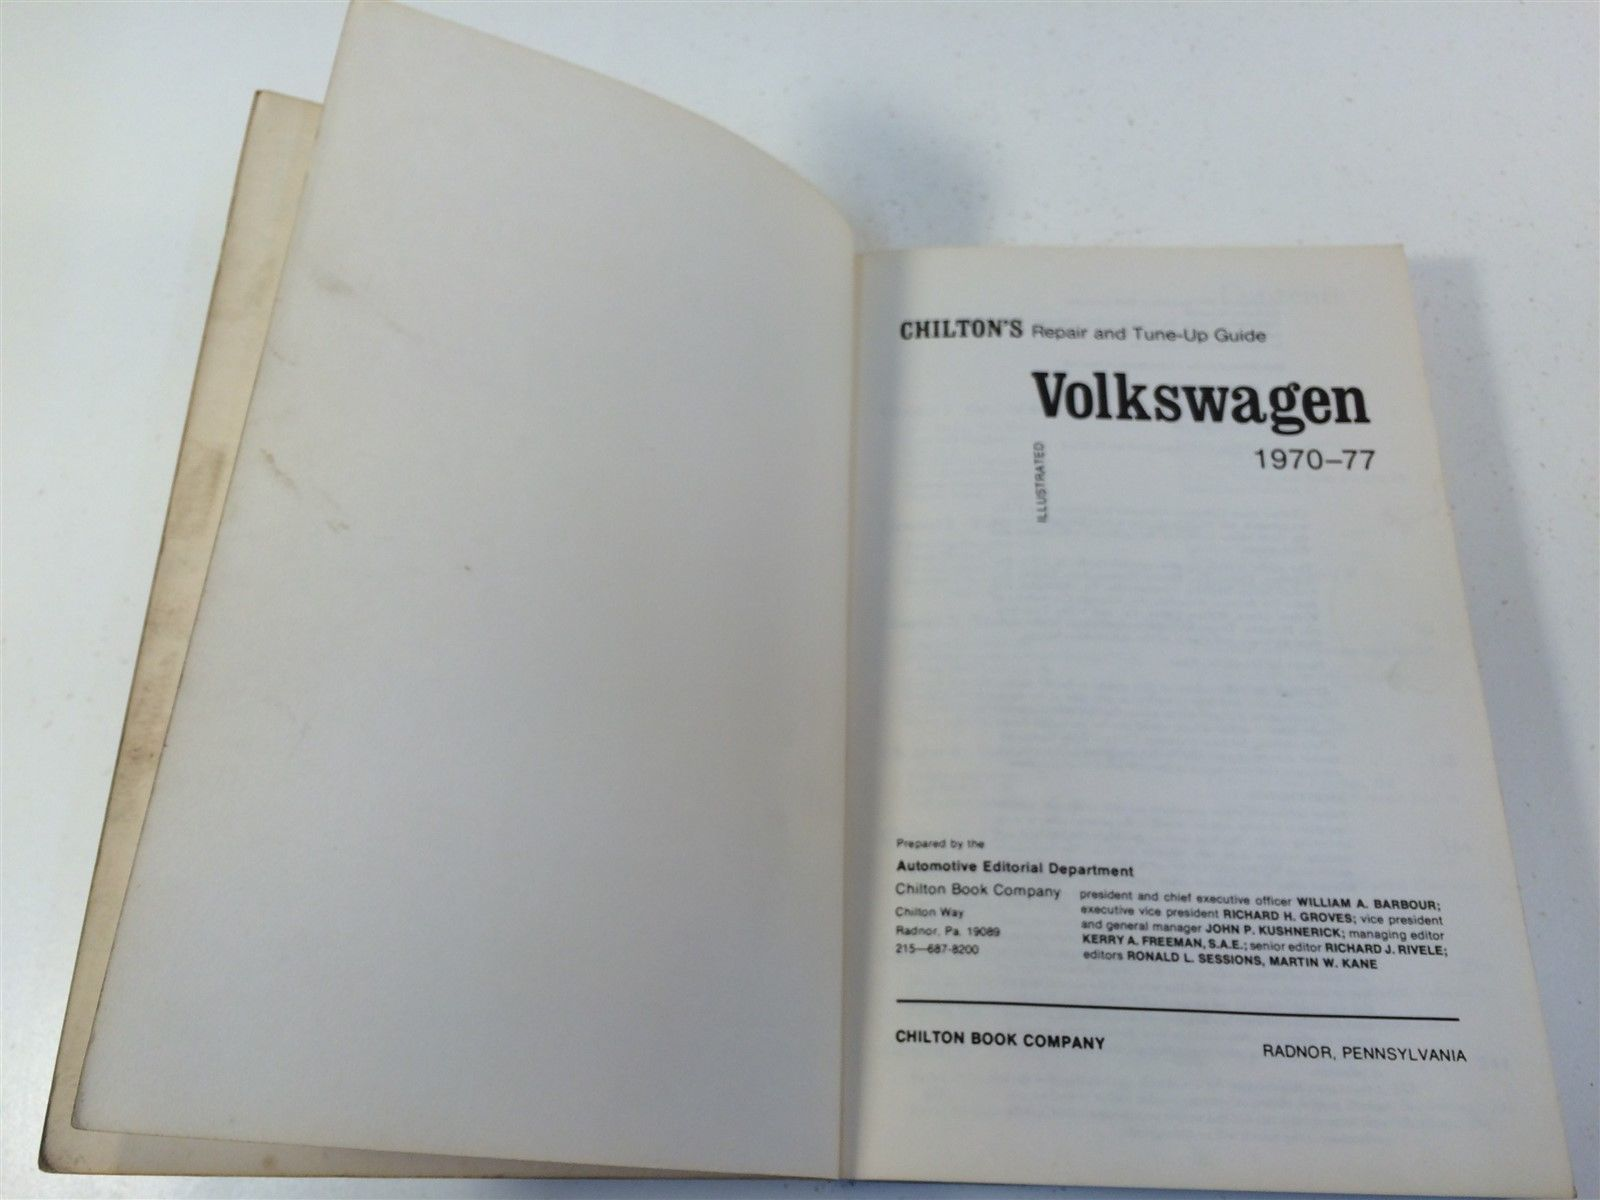 1970-1977 Chilton's Volkswagen Repair and Tune-Up Guide